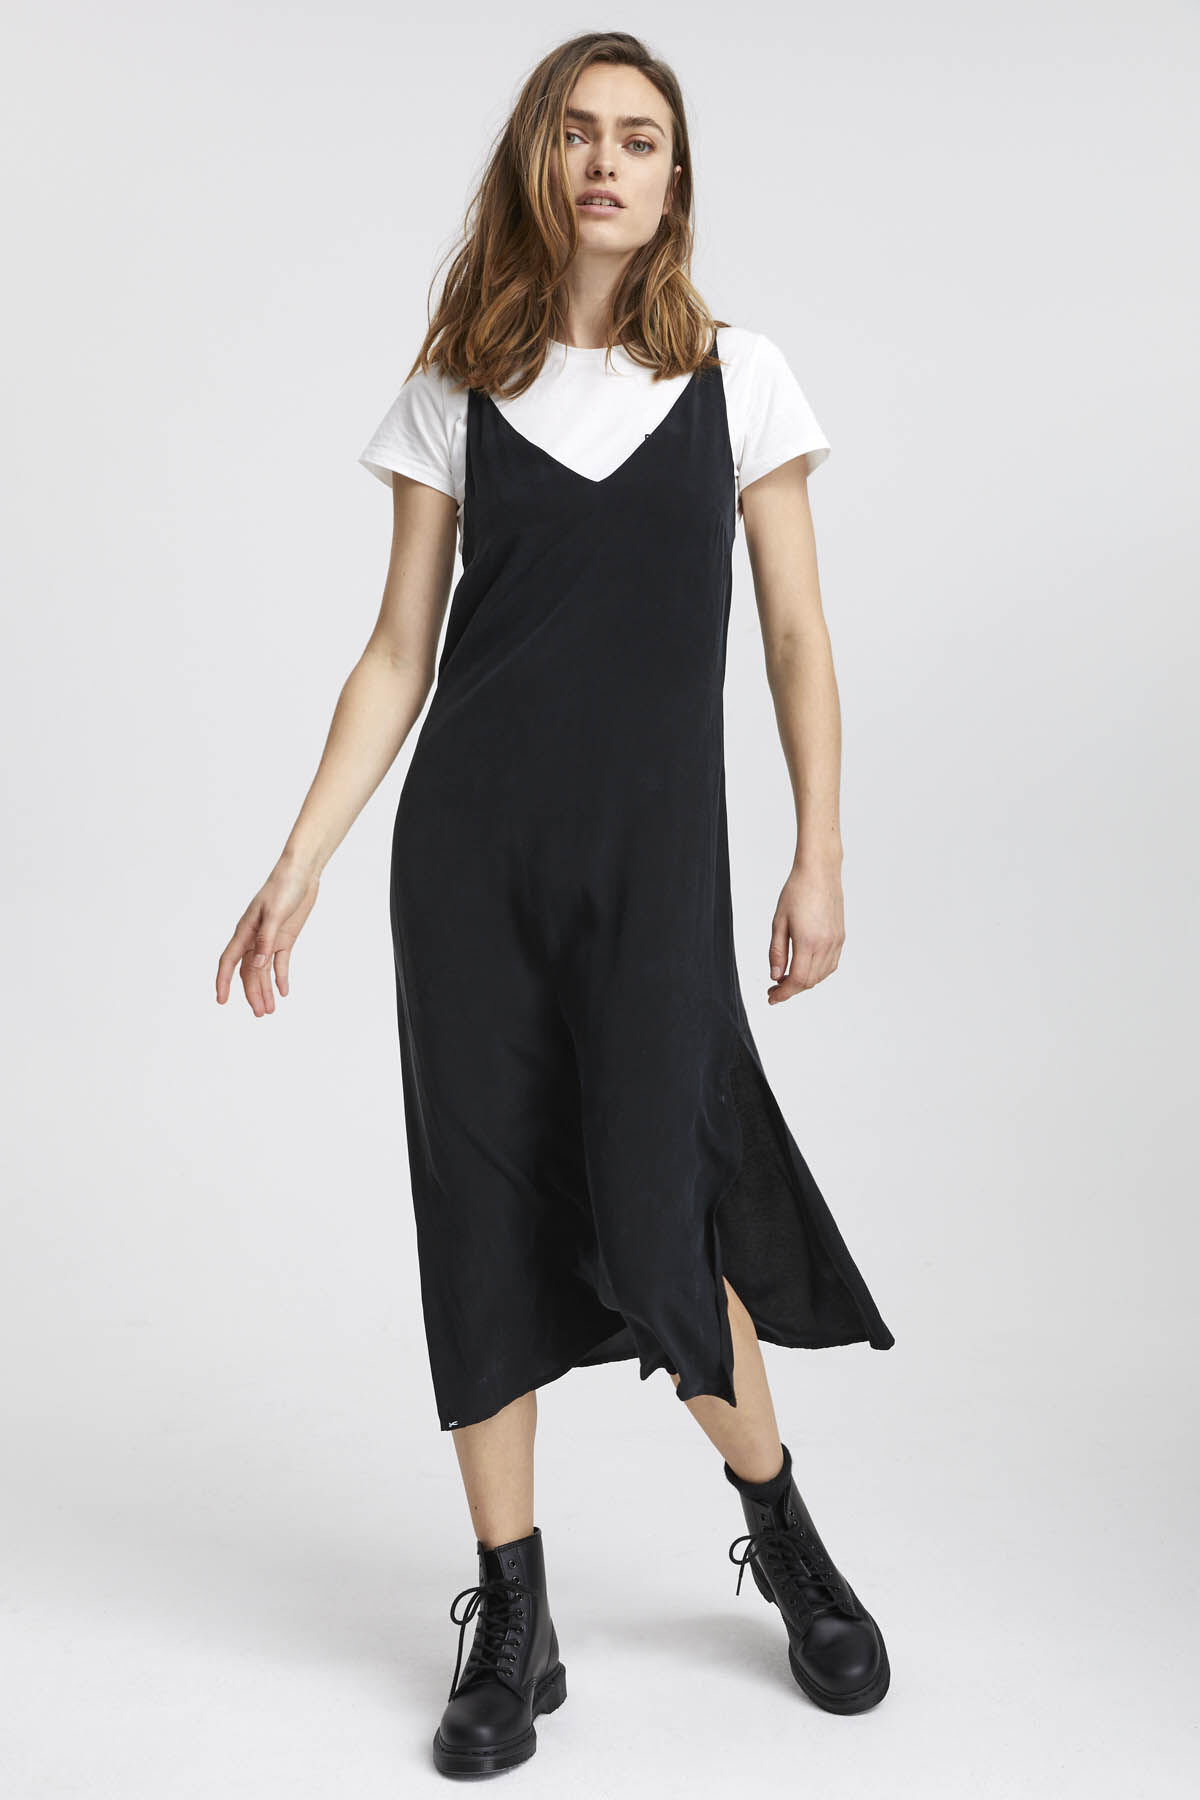 MONICA SLIP DRESS Cotton & Tencel Blend - Midi